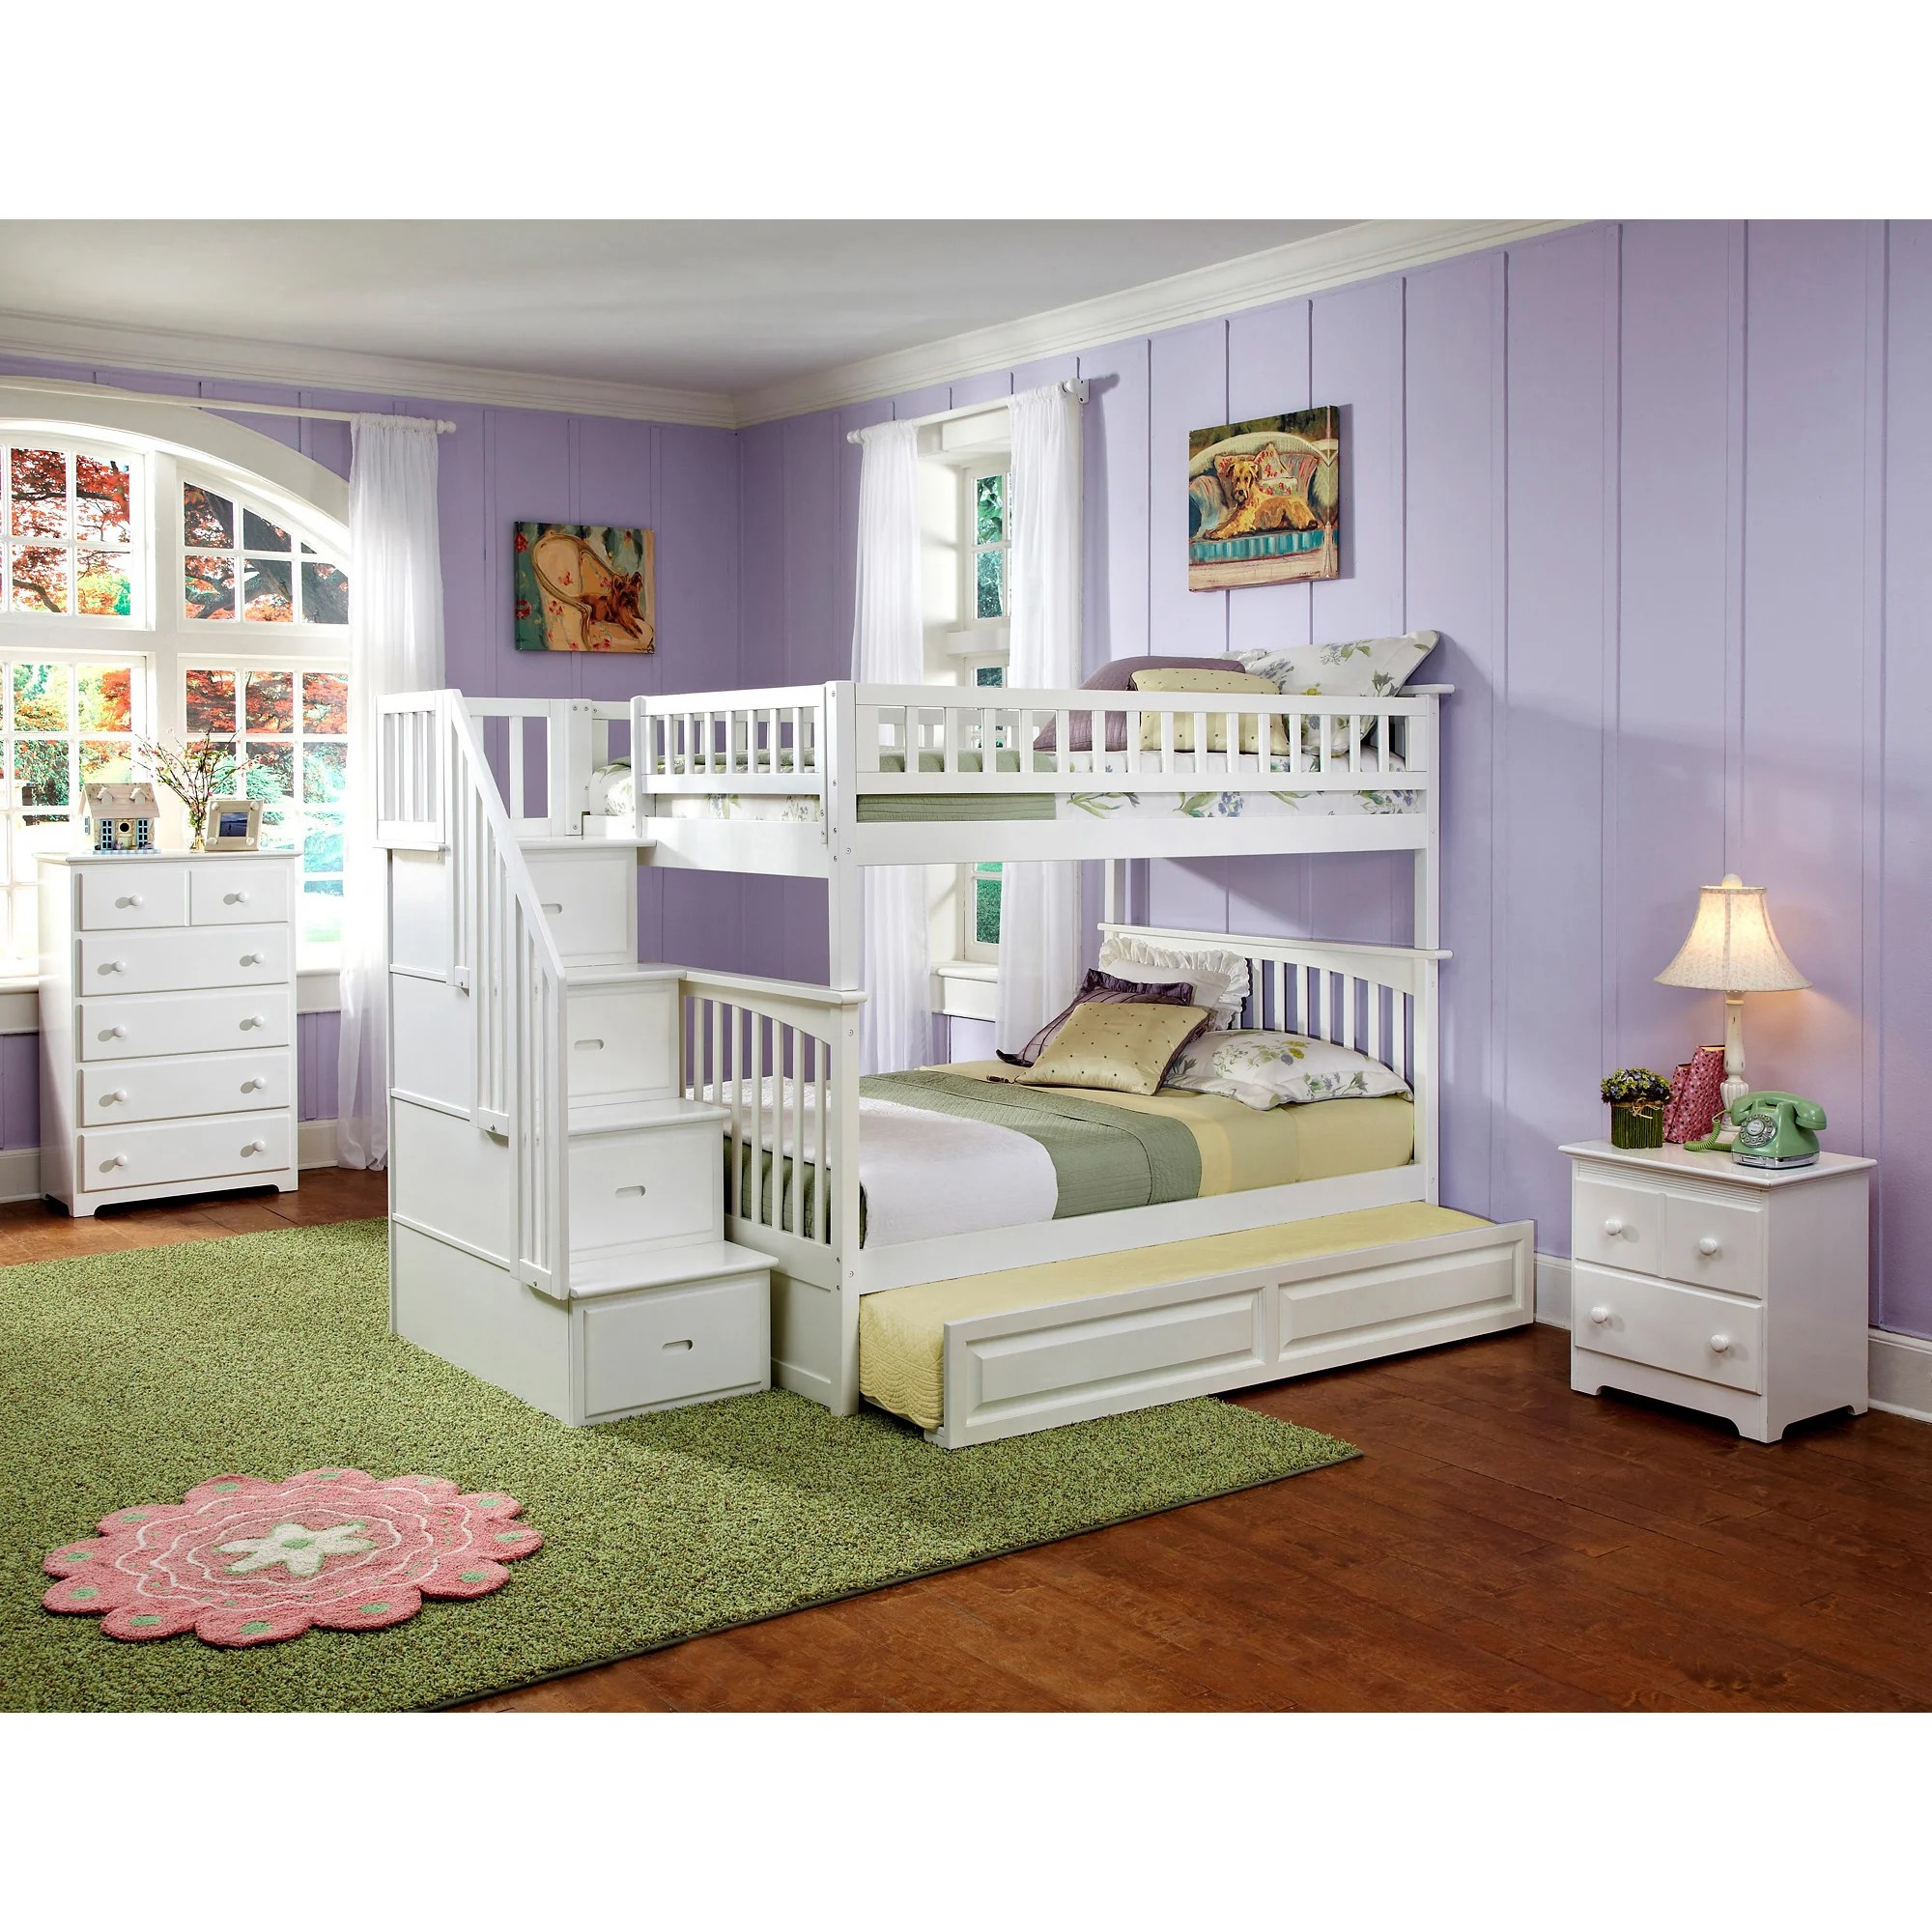 Cheap Toddler Beds Buy Kids Toddler Beds Online At Overstock Our Best Kids